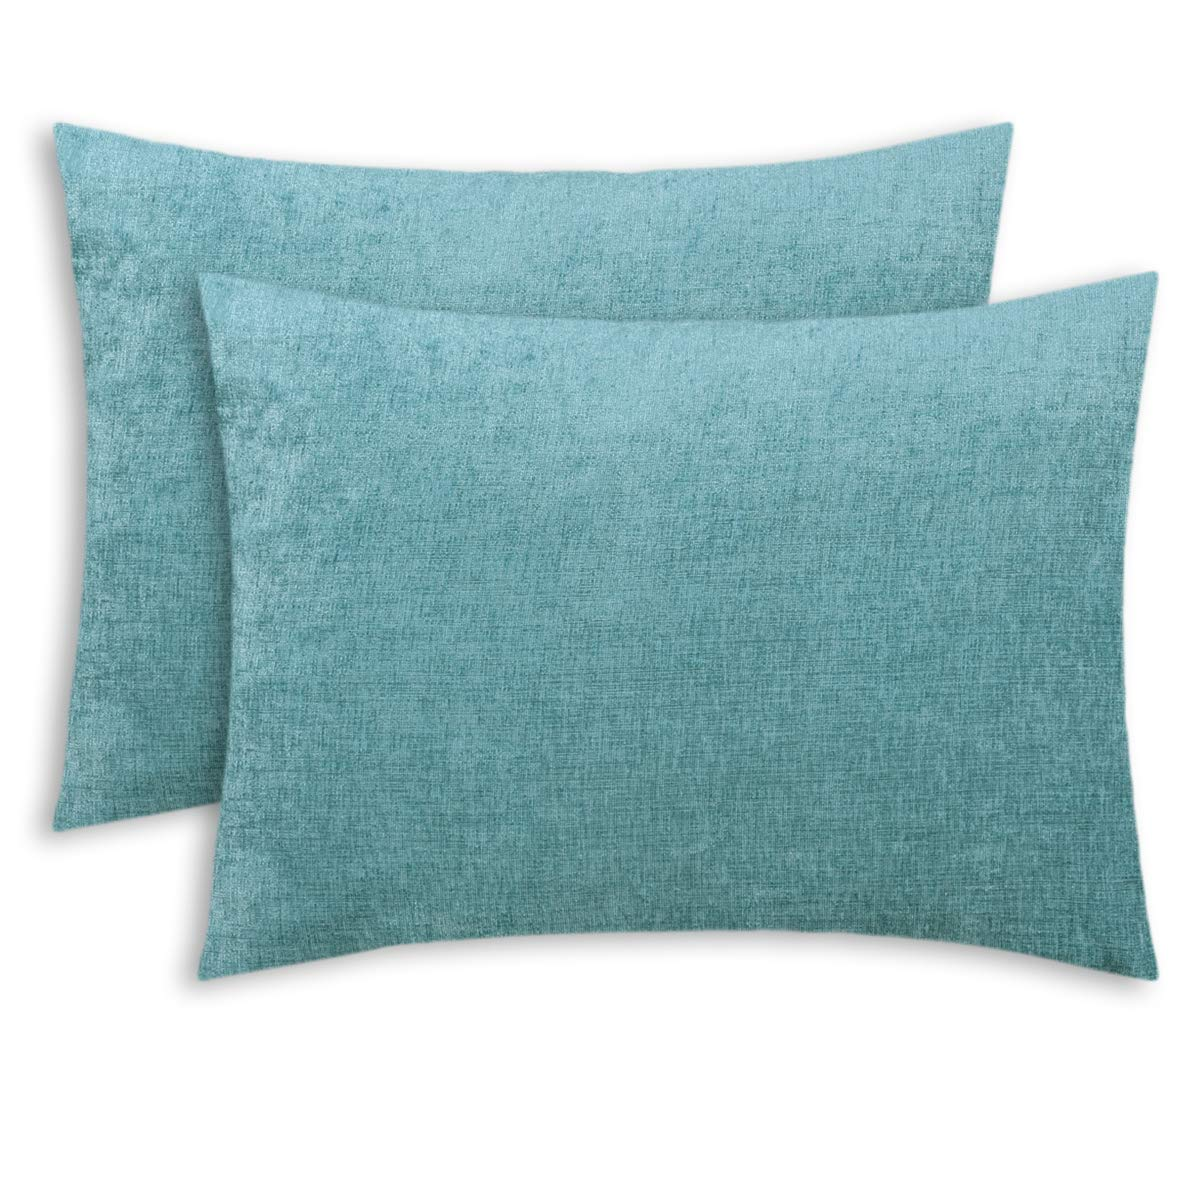 CaliTime Pack of 2 Cozy Standard Pillow Shams Cases for Bed Bedding Decoration Solid Dyed Soft Chenille 20 X 26 Inches Teal